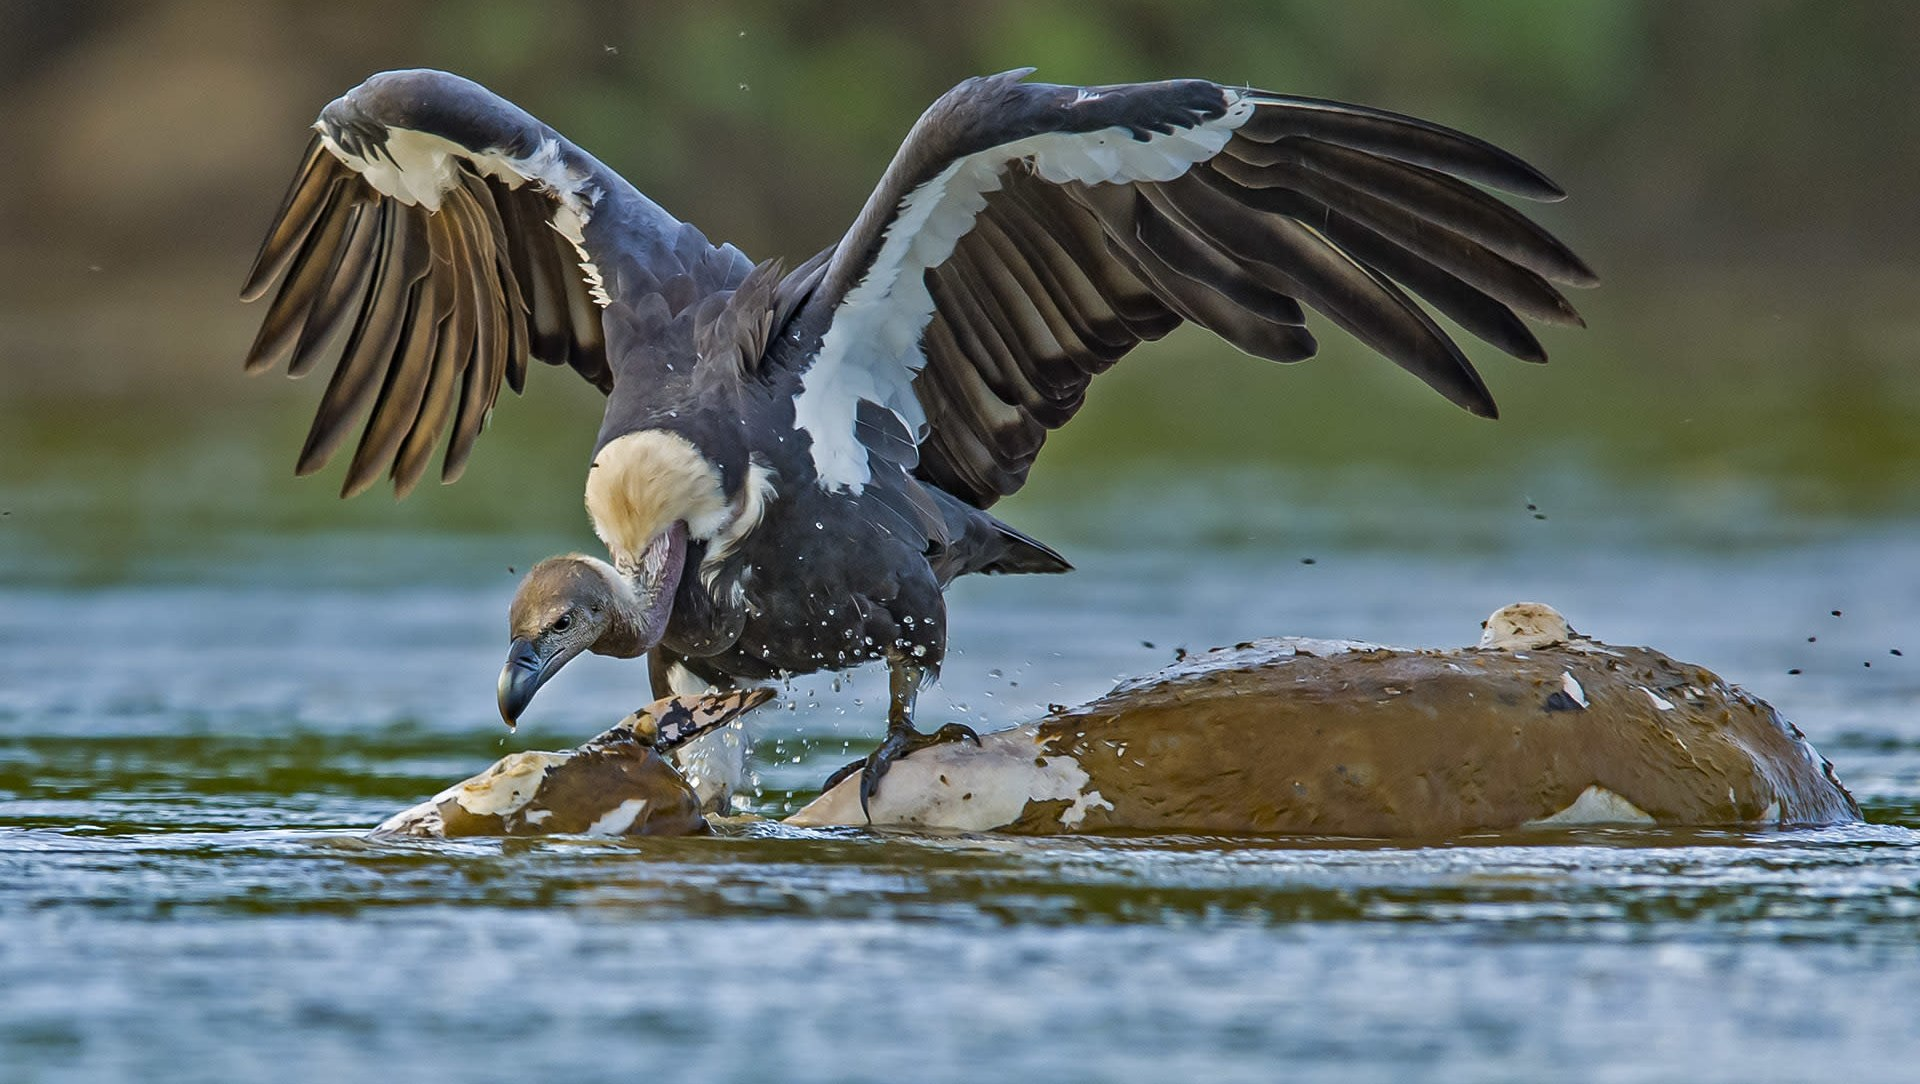 The Good Death Eaters: How Scavengers Keep the Ecosystem Clean